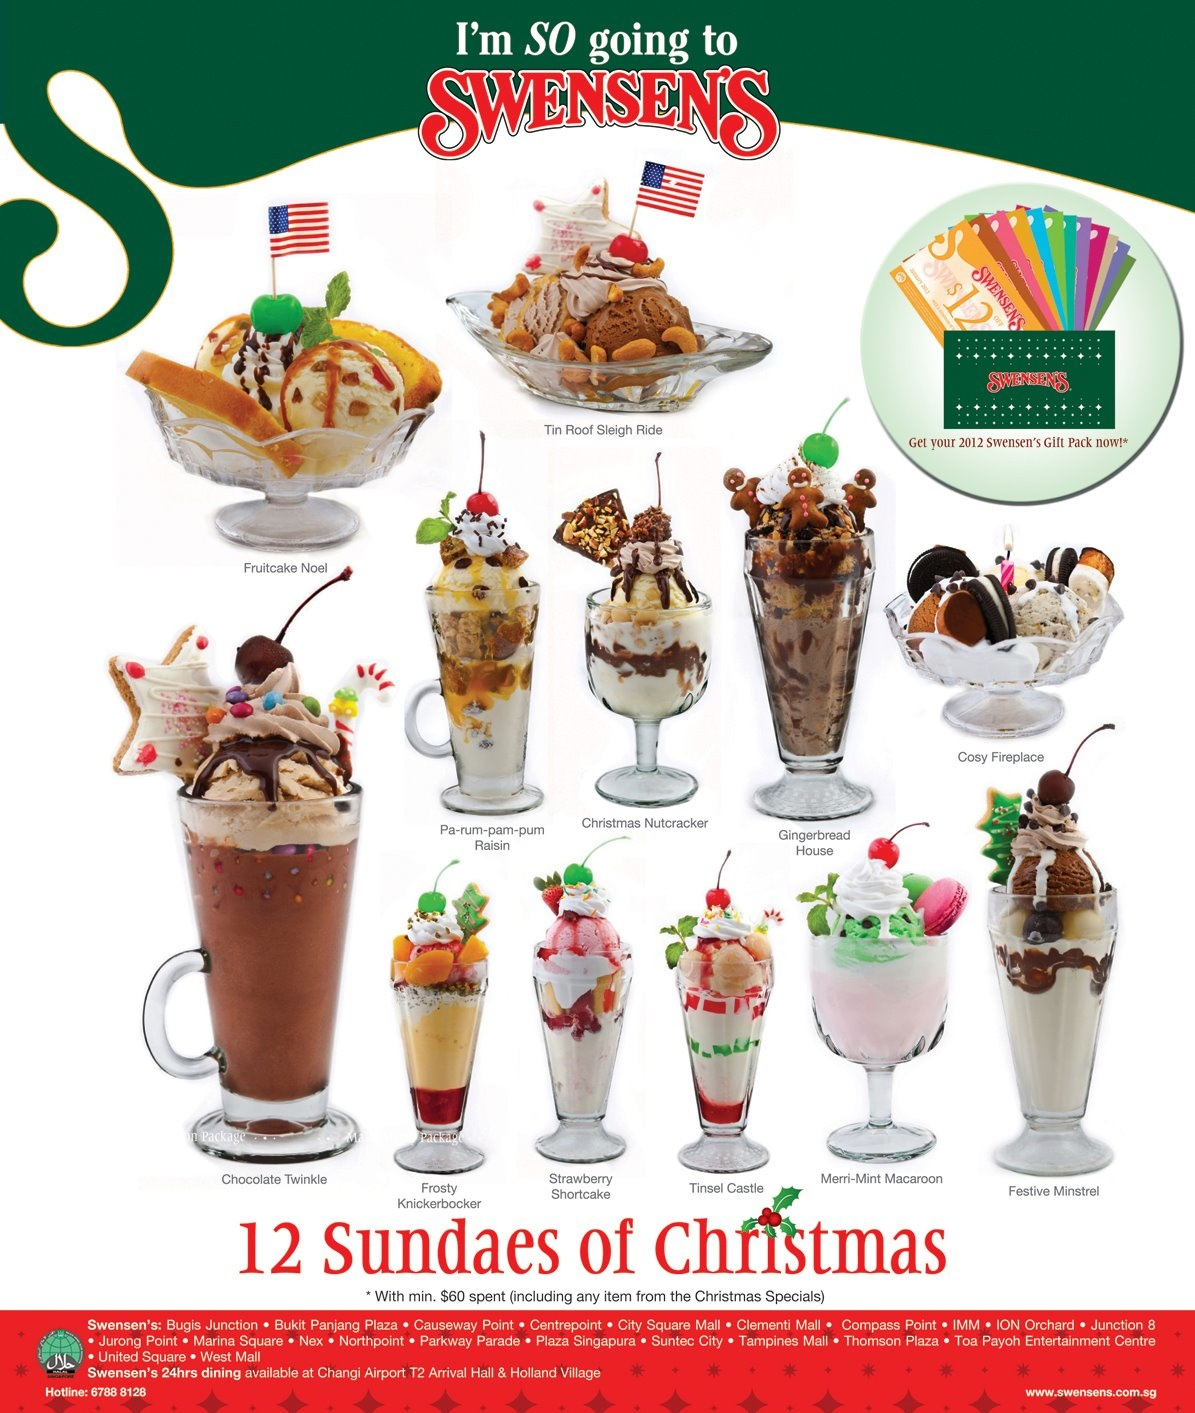 Swensen's Gift Pack Giveaway